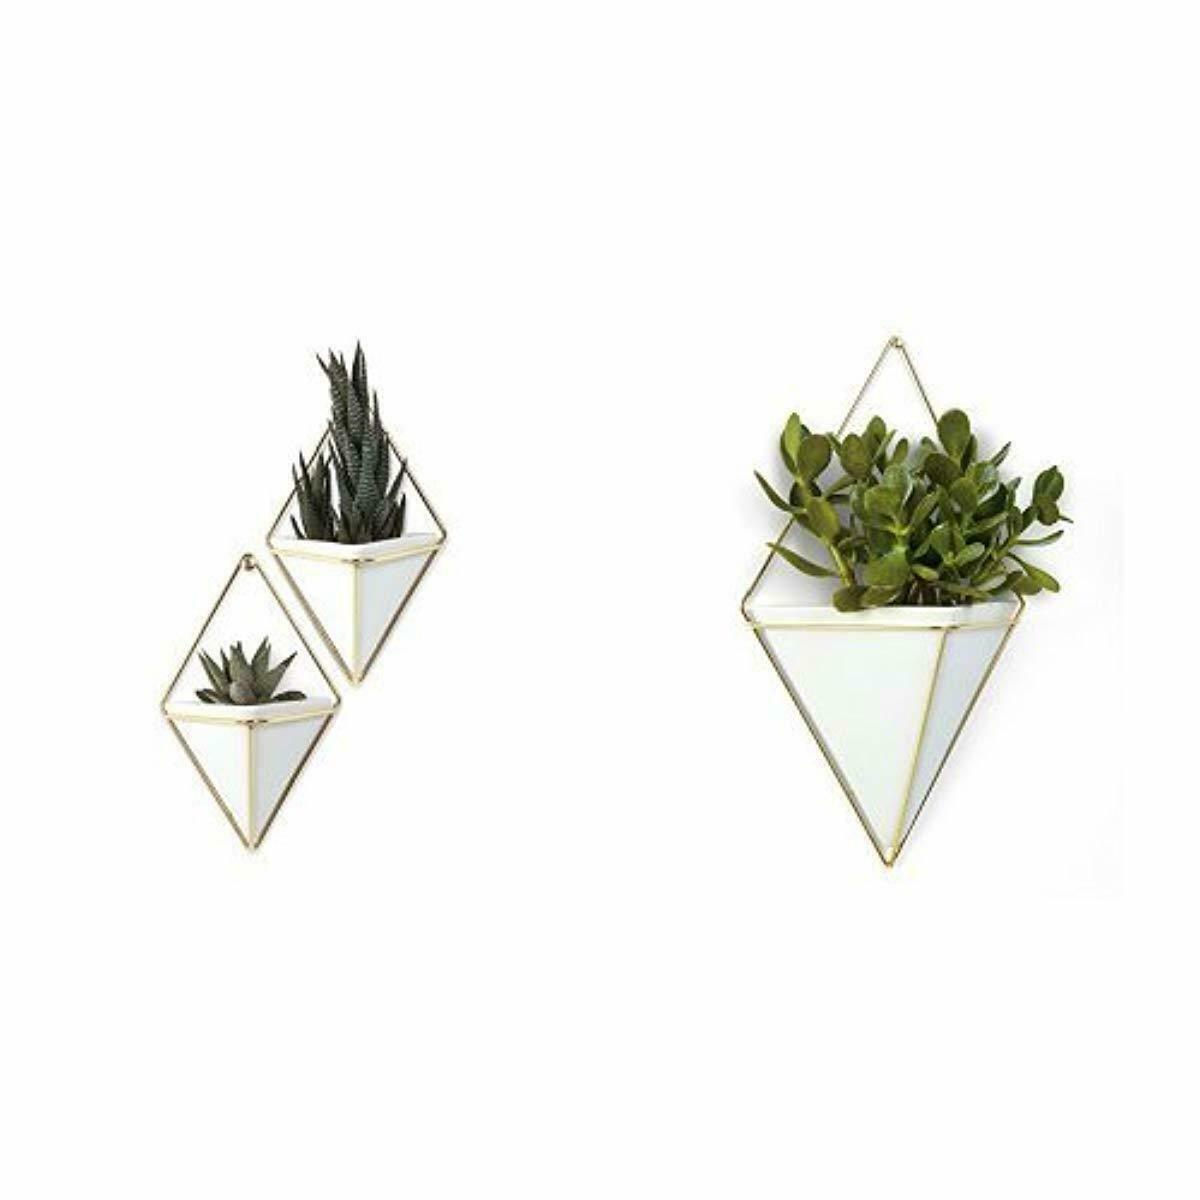 Details About Umbra Trigg Hanging Planter Vase Geometric Wall Decor  Container   Great For Su Inside Trigg Ceramic Planter Wall Decor (Photo 25 of 30)